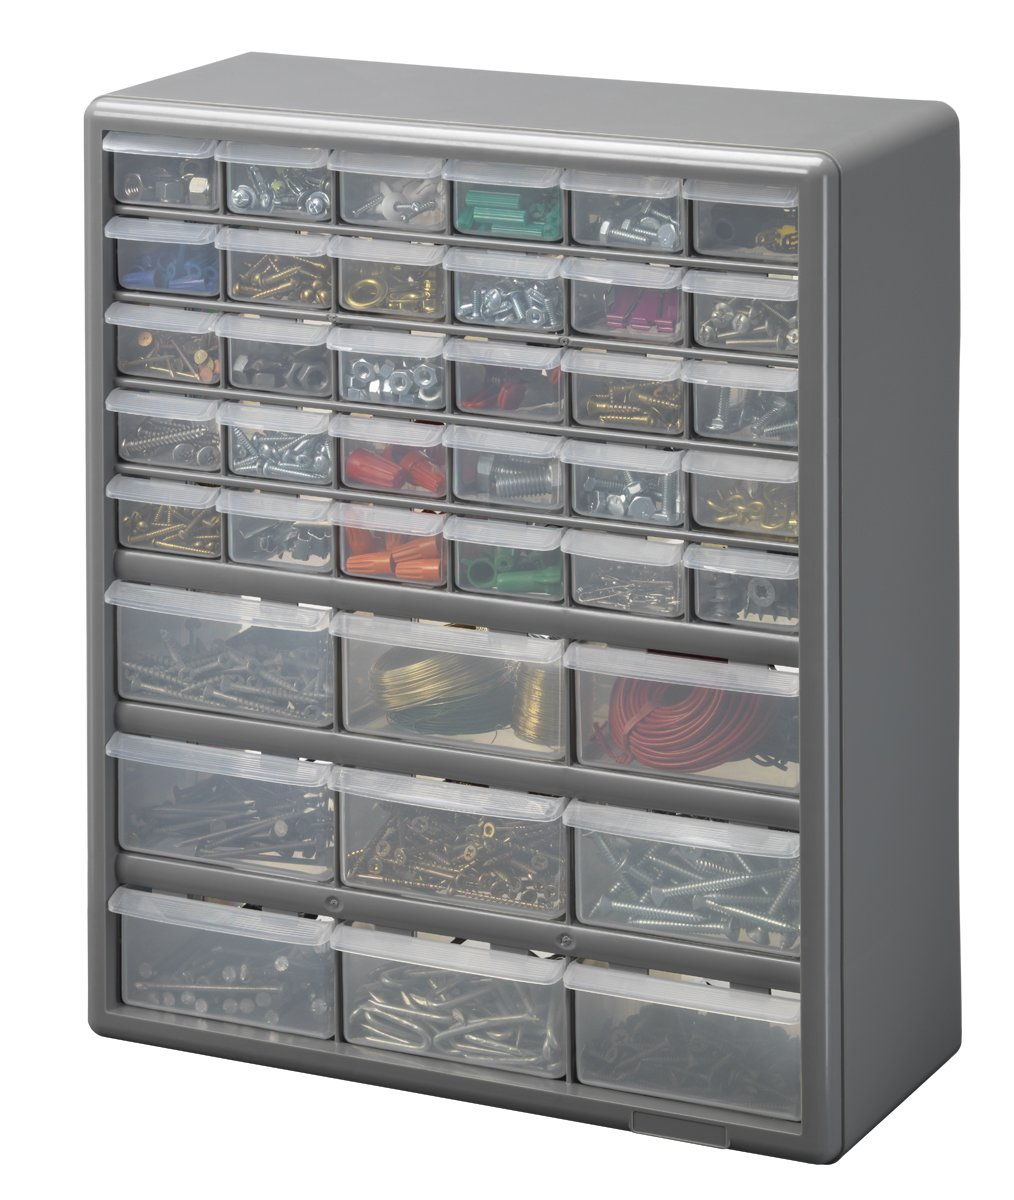 Amazon.com: Stack-On DS-39 39 Drawer Storage Cabinet: Home Improvement